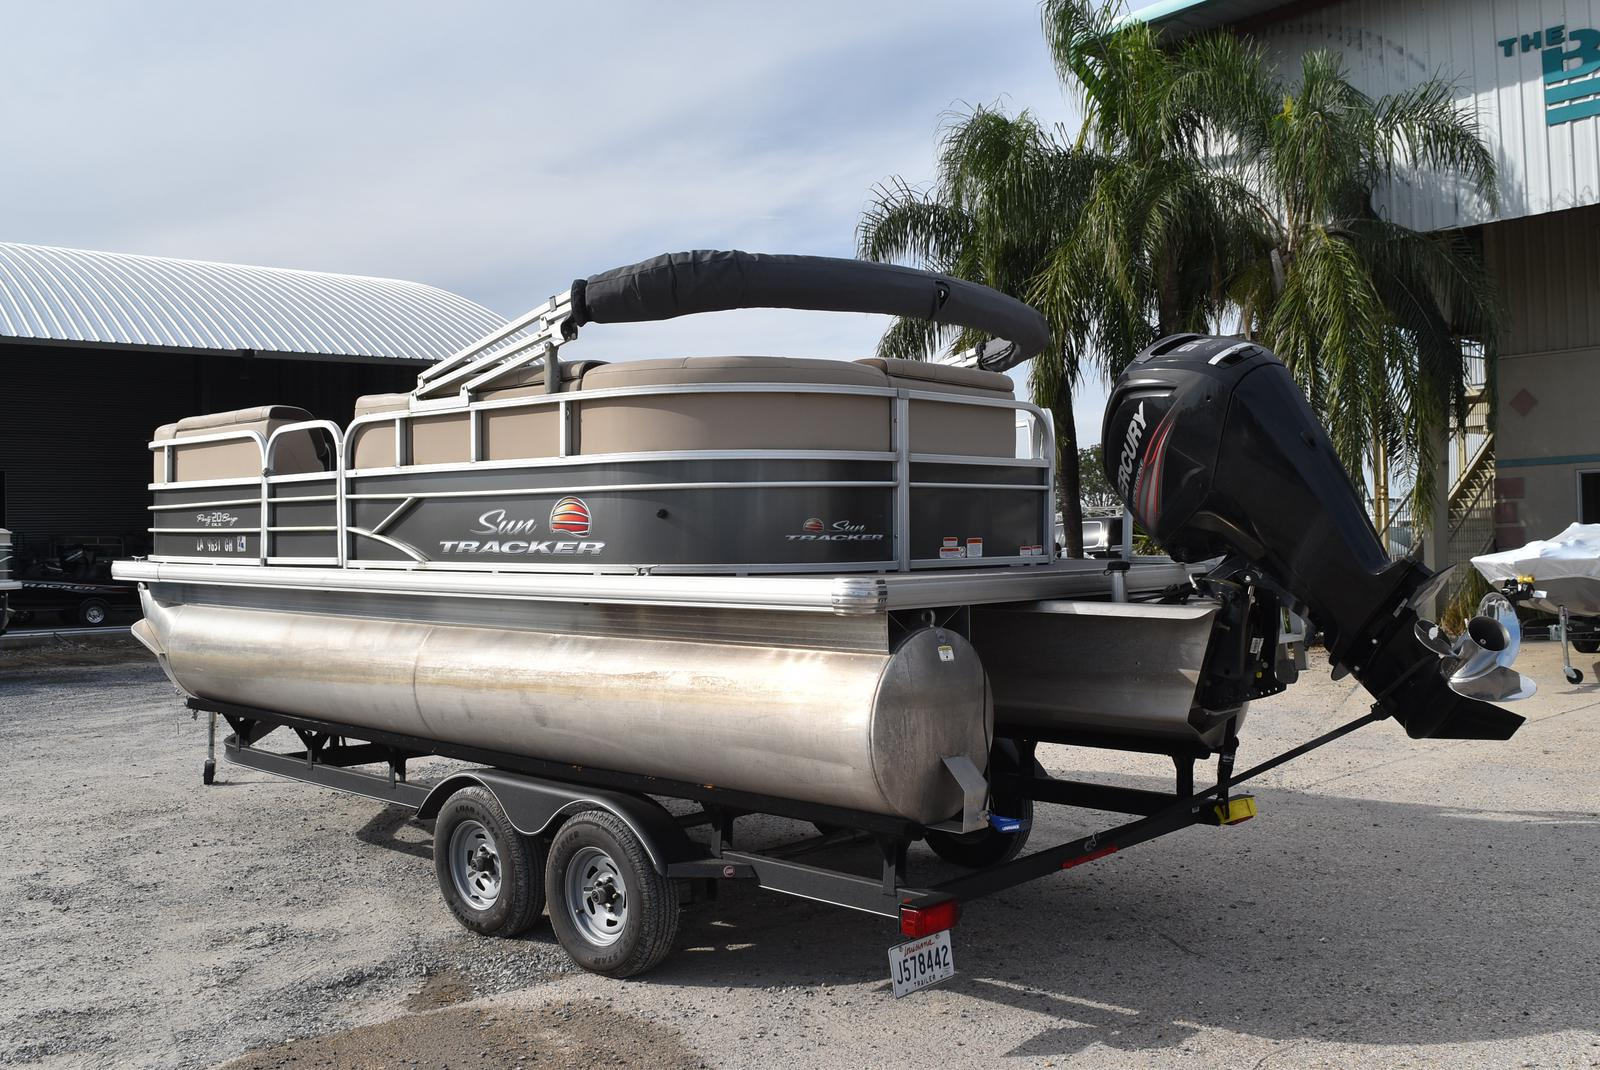 2018 Sun Tracker boat for sale, model of the boat is Party Barge 20 DLX, 90CT & Image # 11 of 14